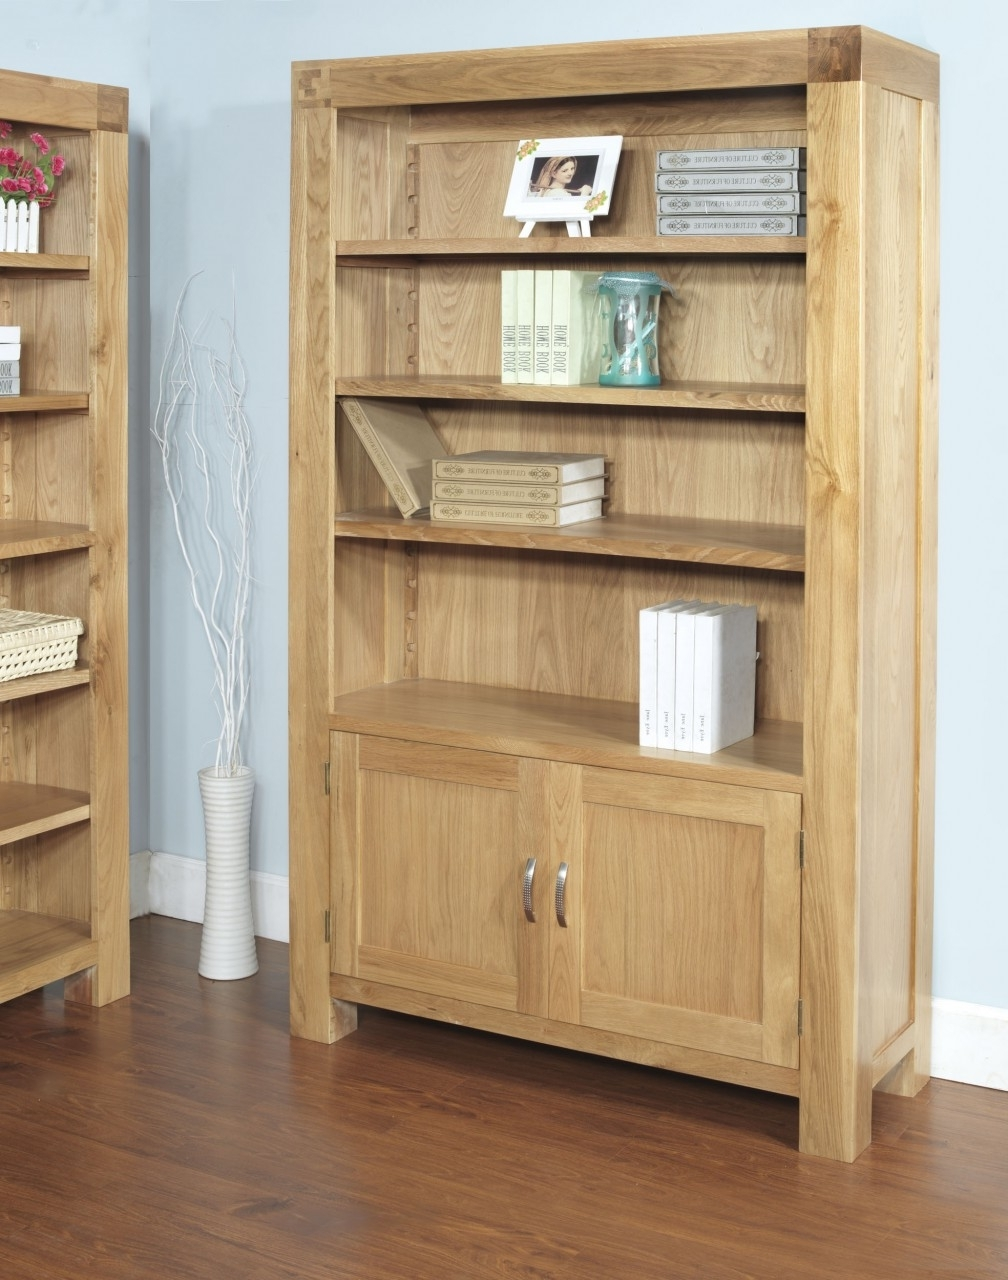 Bookcases With Cupboard Under Within Best And Newest Bookcases Ideas: Amish Bookcases Furniture In Solid Wood Real Wood (View 14 of 15)